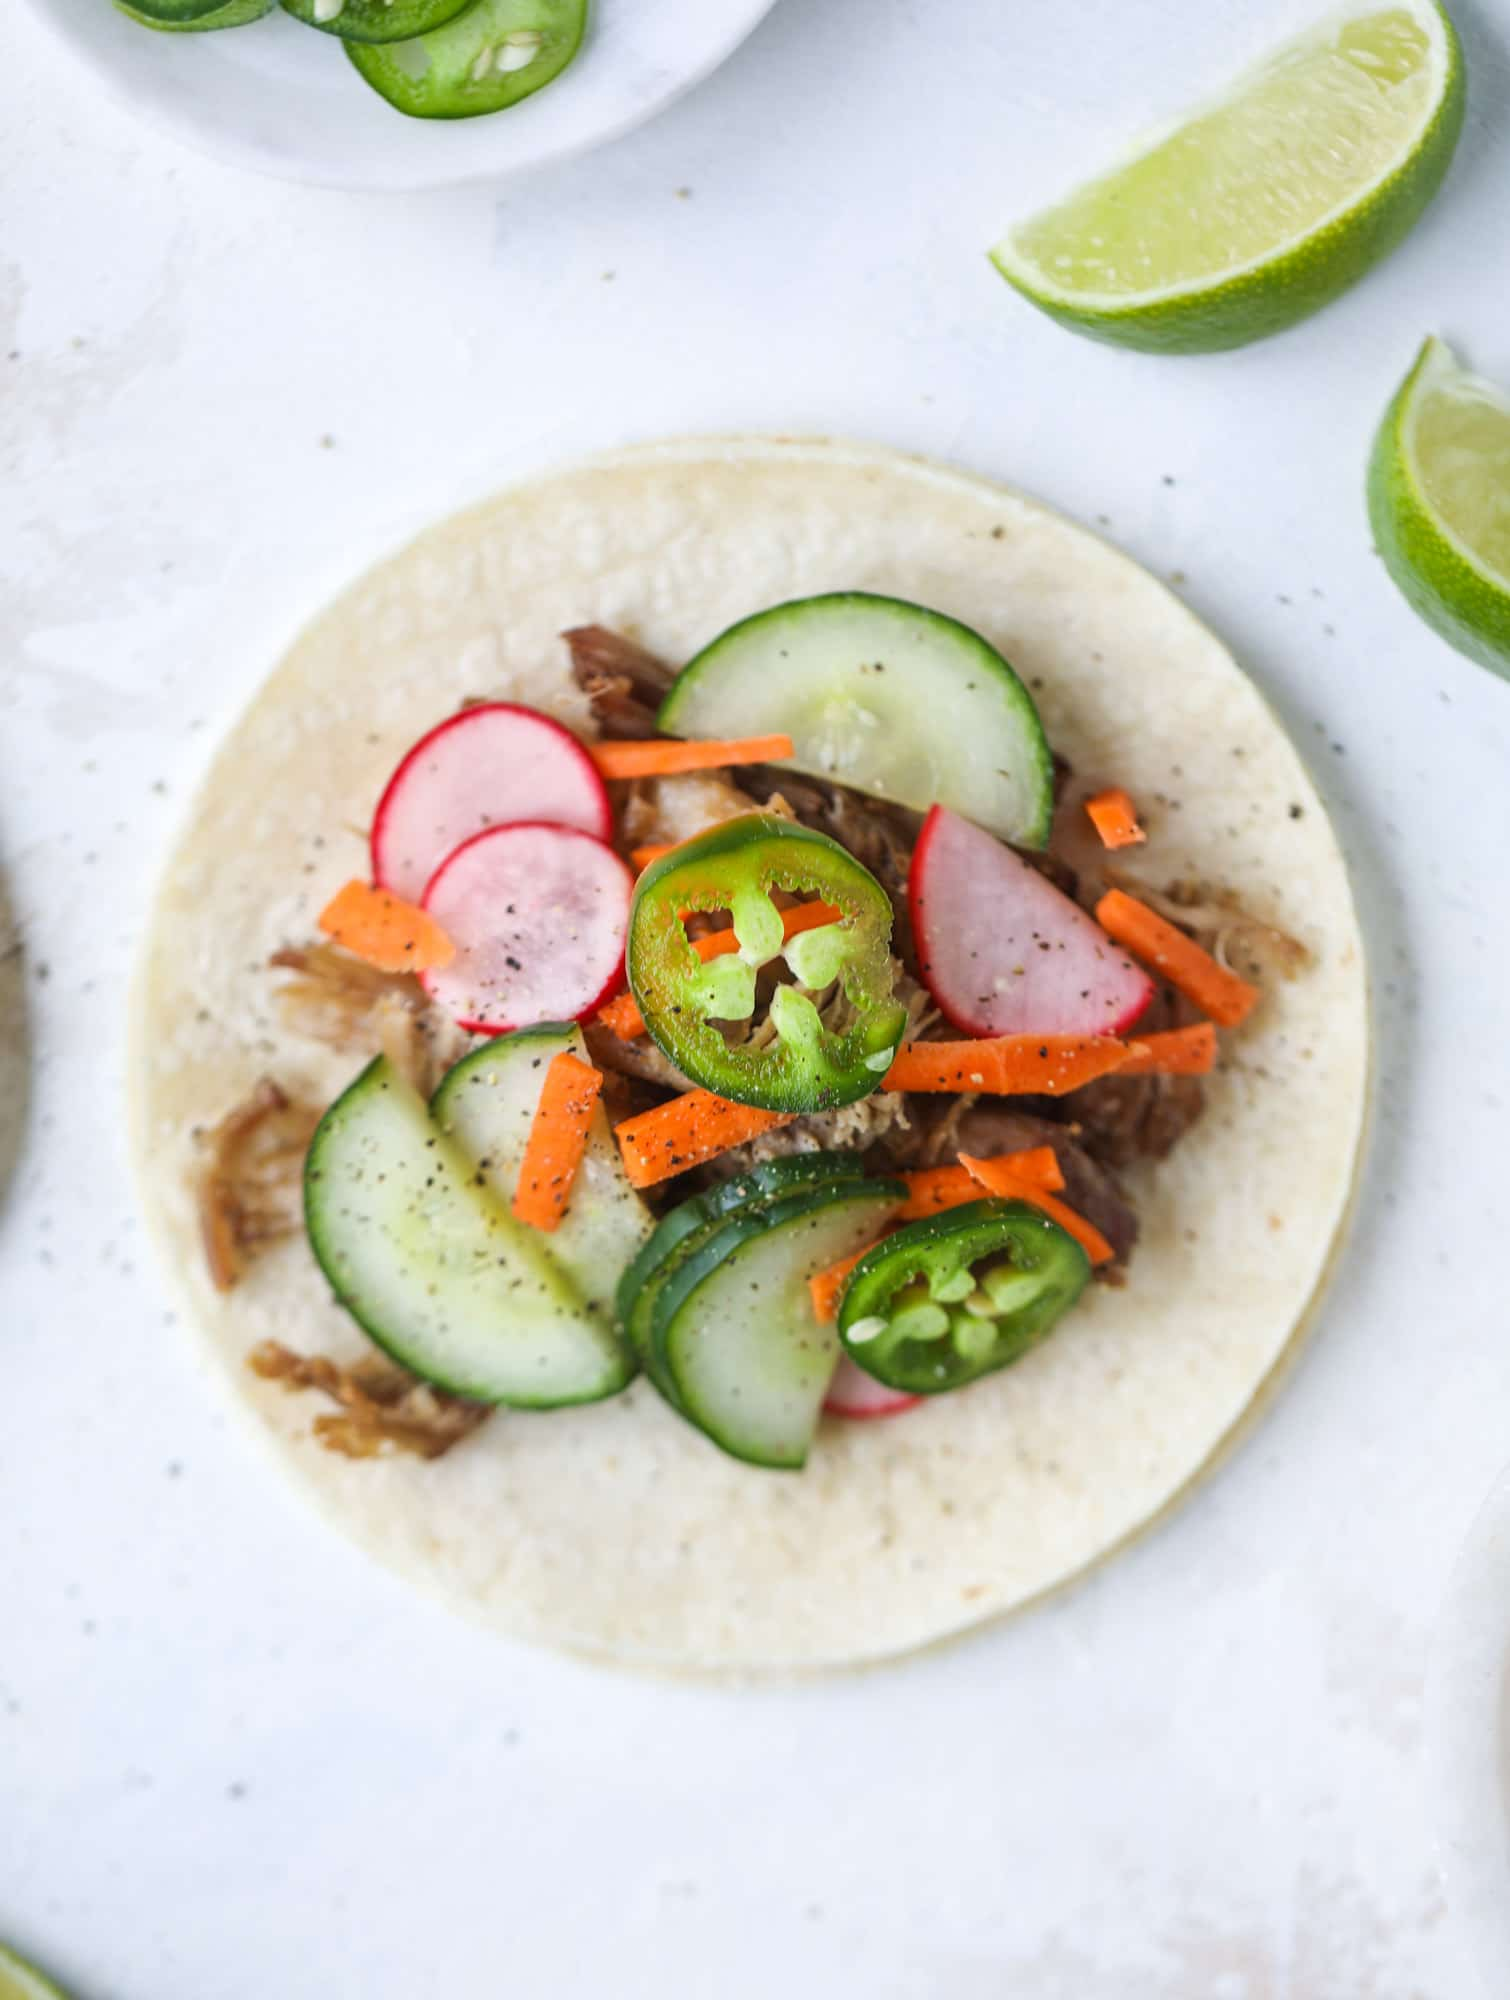 These bahn mi tacos are the perfect twist on the classic sandwich! Juicy pulled pork, pickled veggies, a tangy crema and loads of flavor. Bahn mi tacos are a delish weeknight meal or also work great if you have pork leftovers! I howsweeteats.com #bahn #mi #tacos #pork #dinner